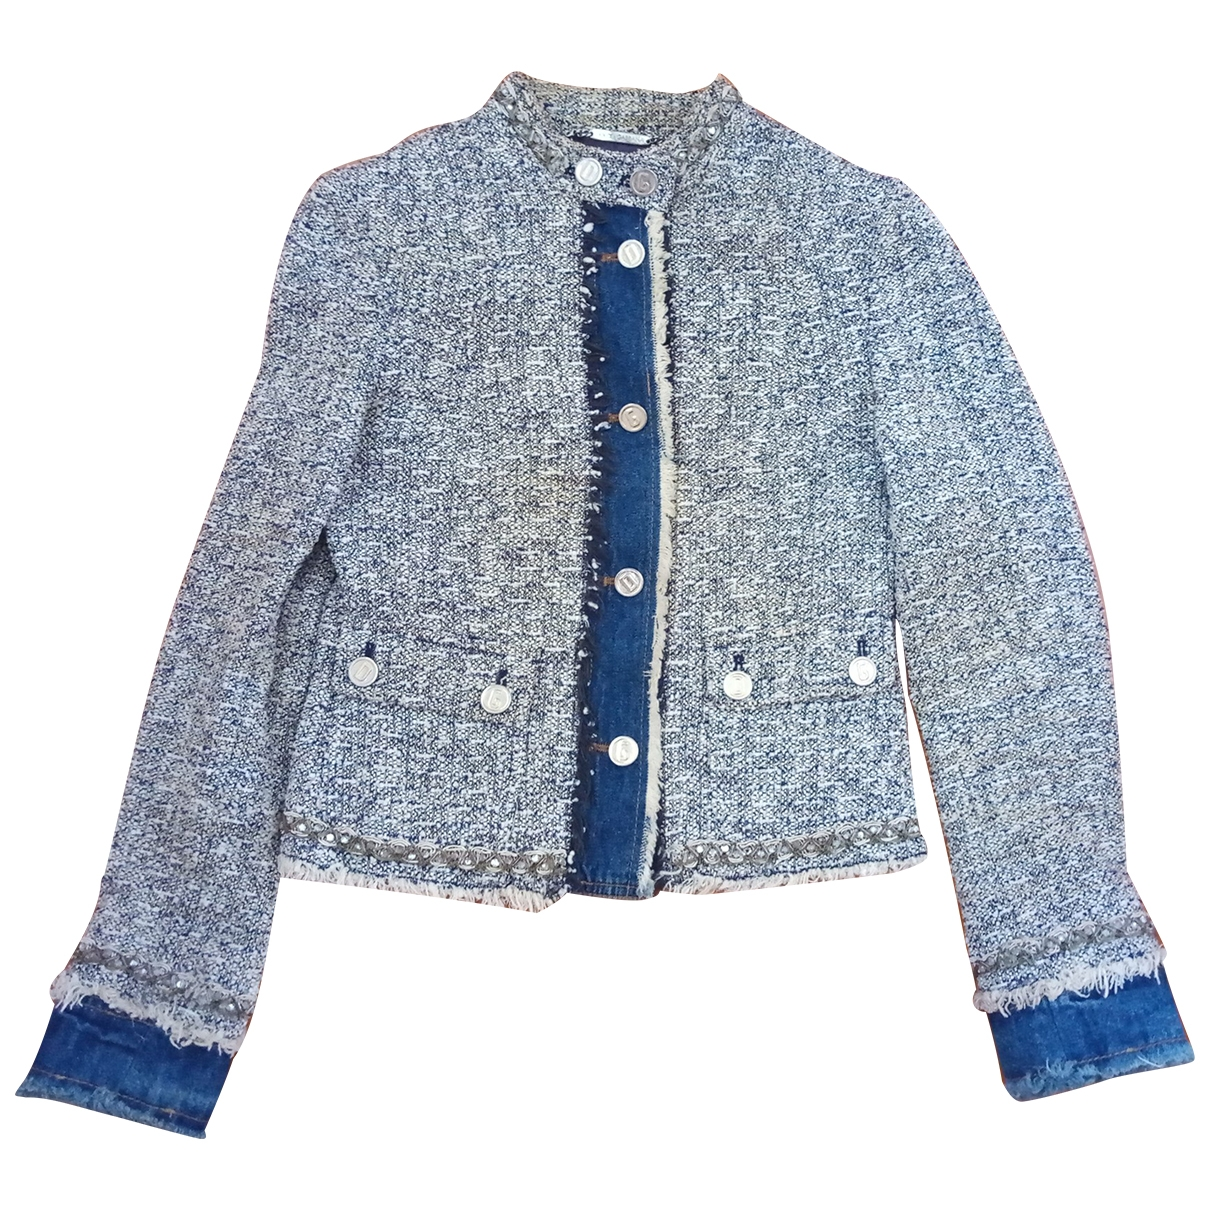 Dolce & Gabbana \N Blue Cotton jacket for Women 38 IT